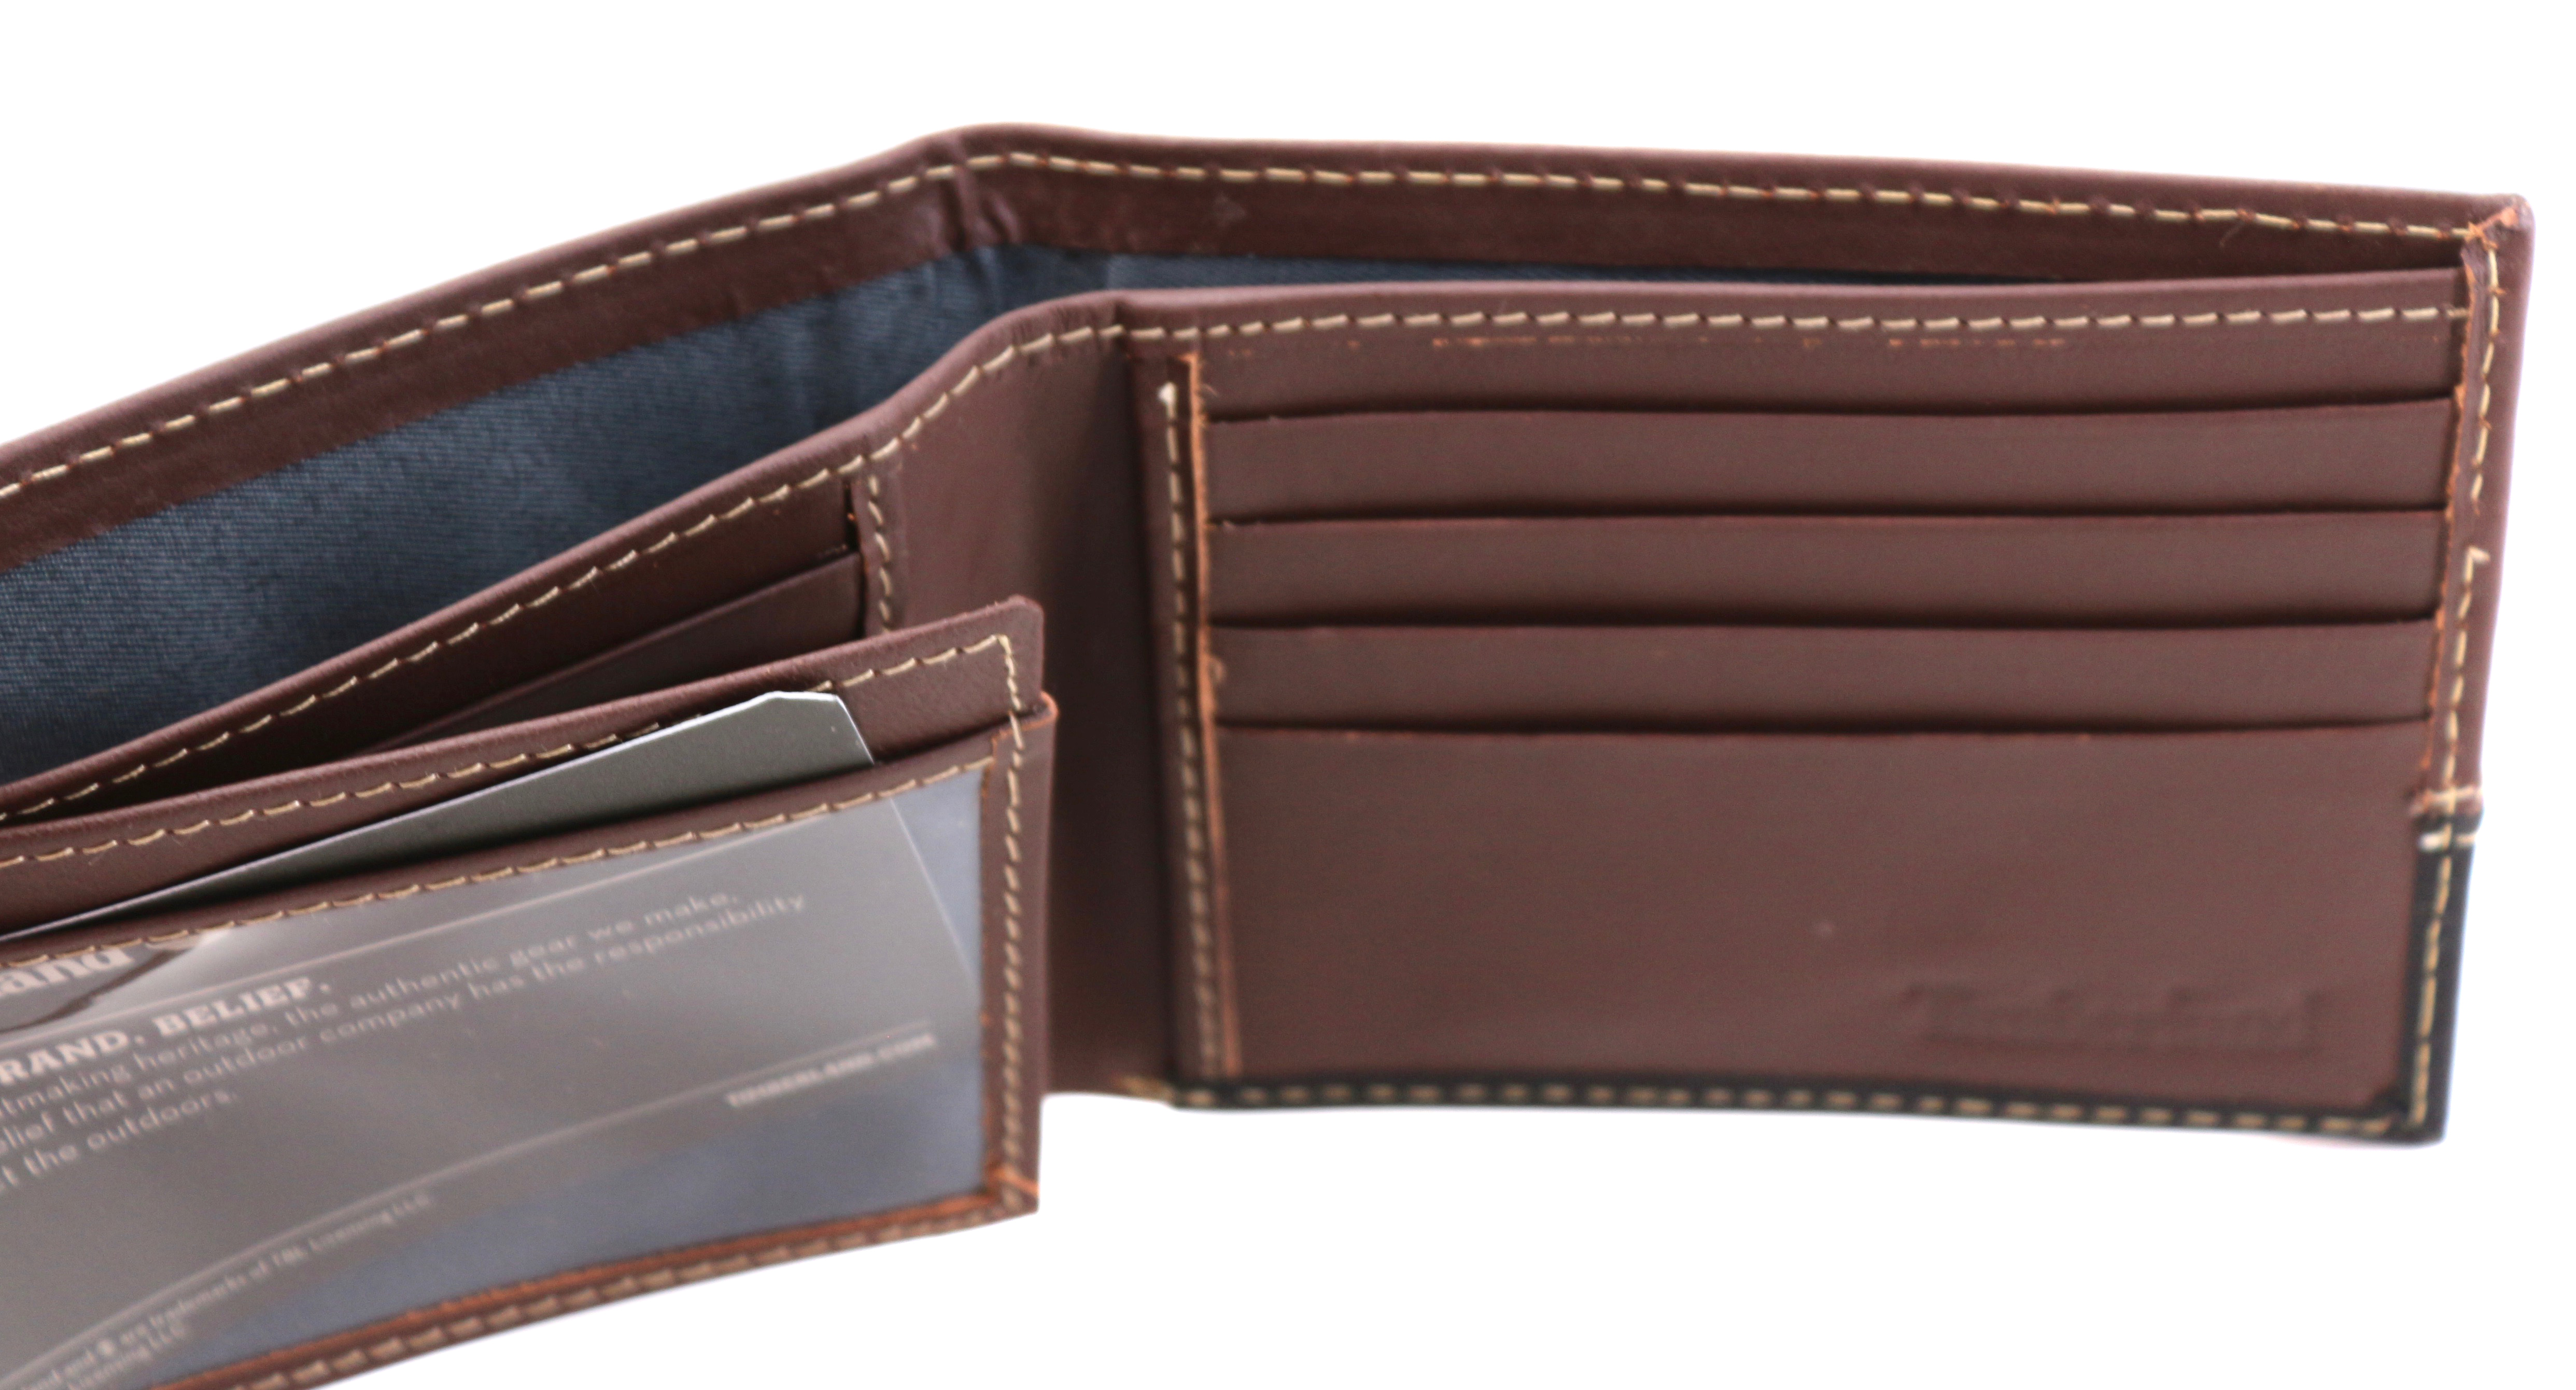 Timberland-Men-039-s-Genuine-Two-Tone-Leather-Credit-Card-Billfold-Commuter-Wallet thumbnail 6